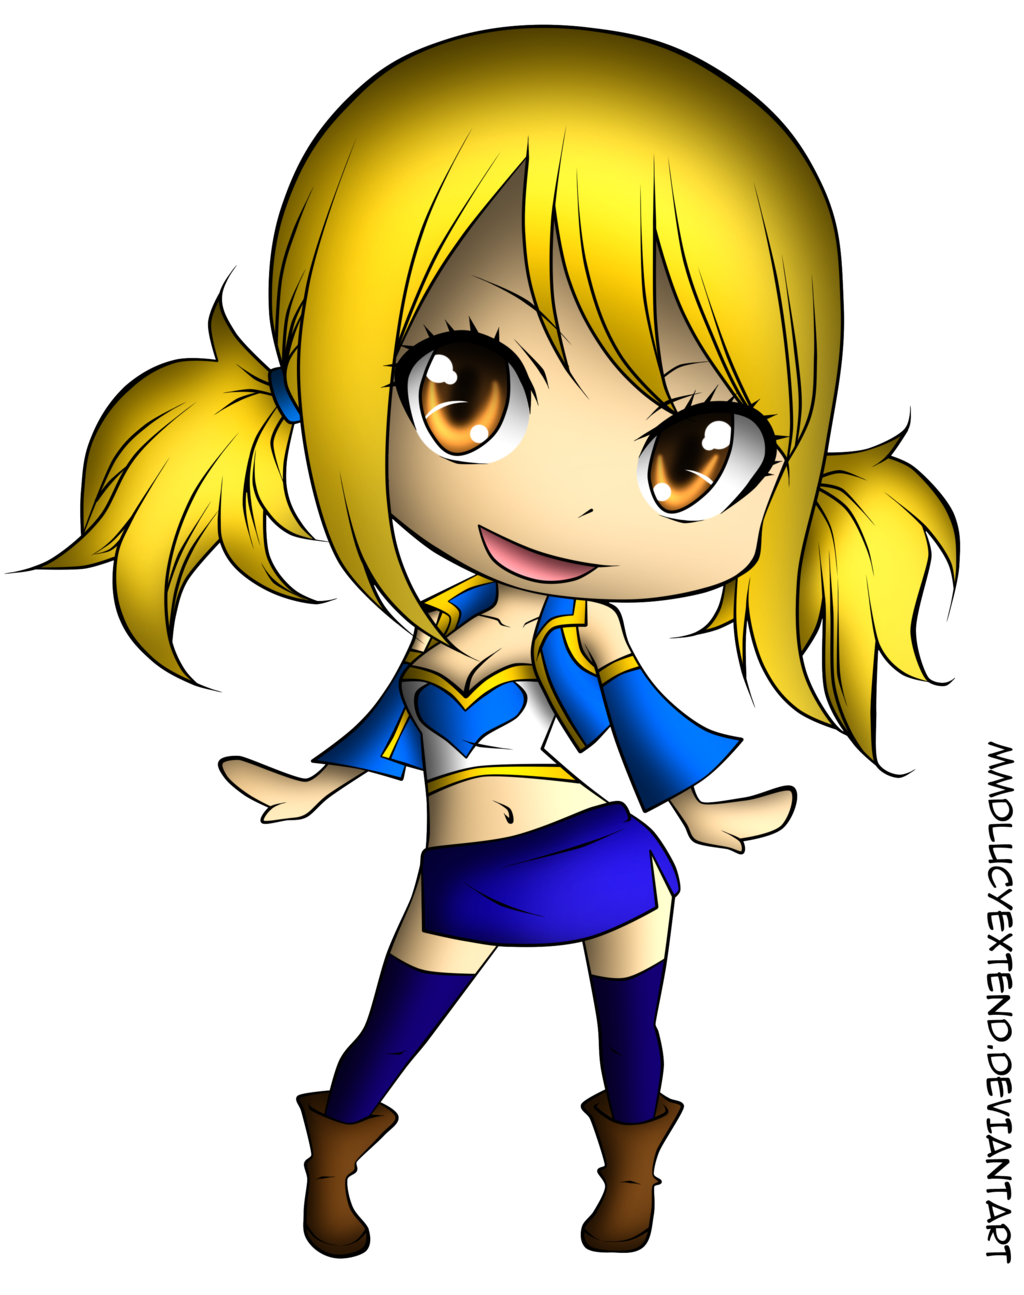 Fairy tail clipart chibi library Fairy tail clipart chibi - ClipartFest library